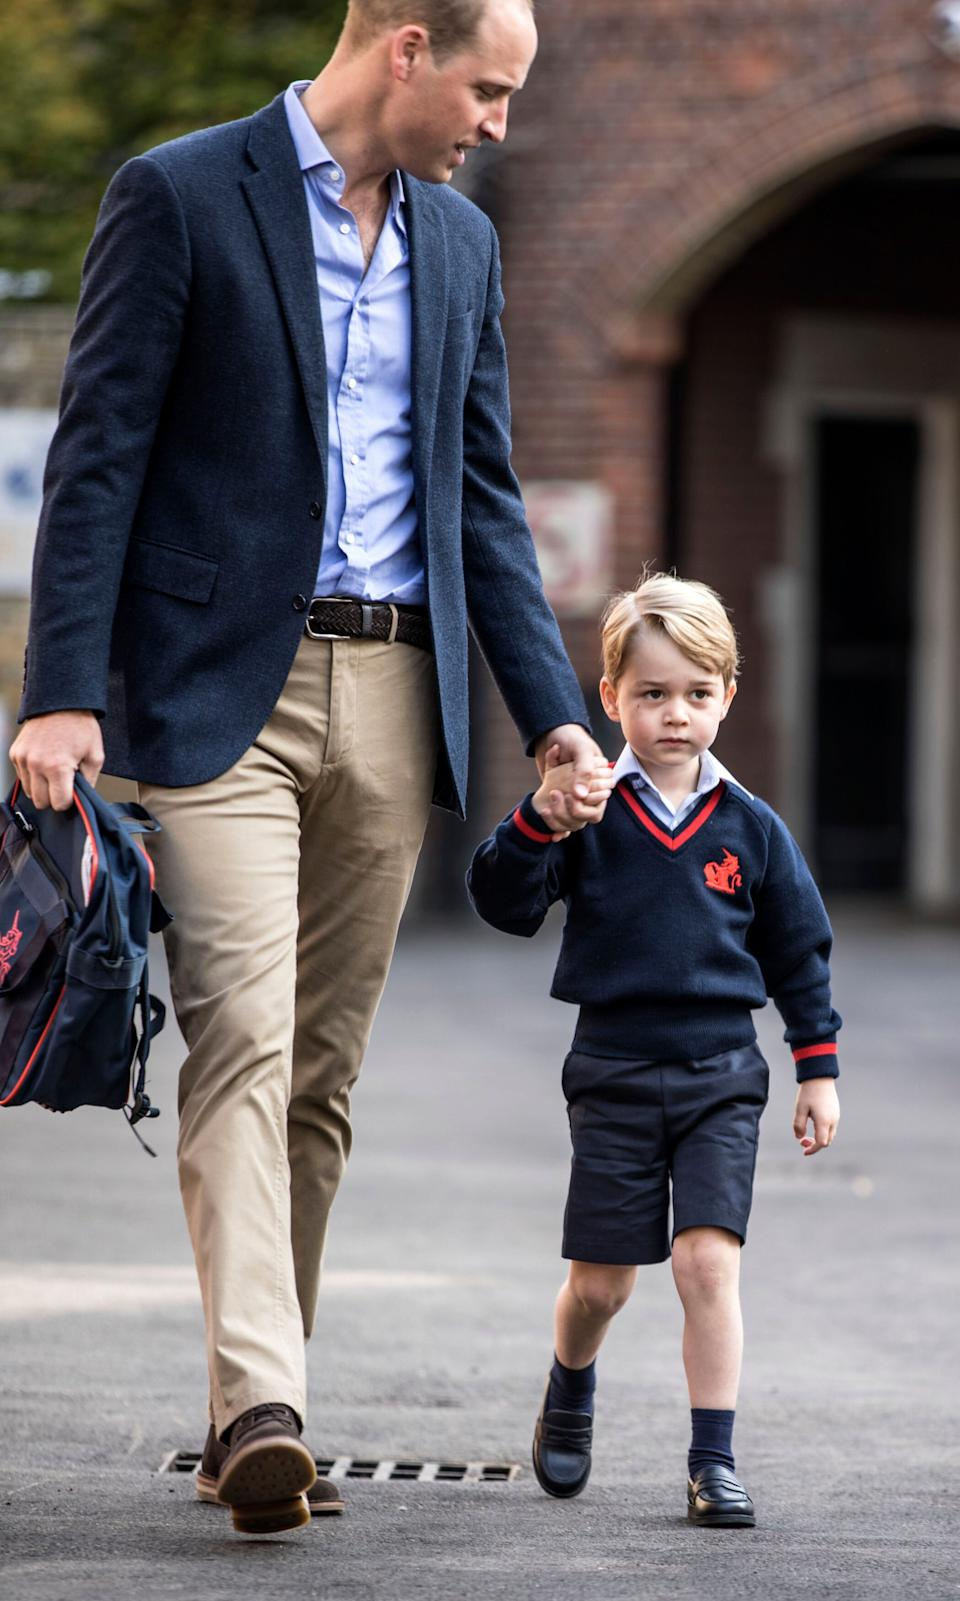 Prince George with father William on his first day of school at Thomas's Battersea in September 2017 [Photo: PA]